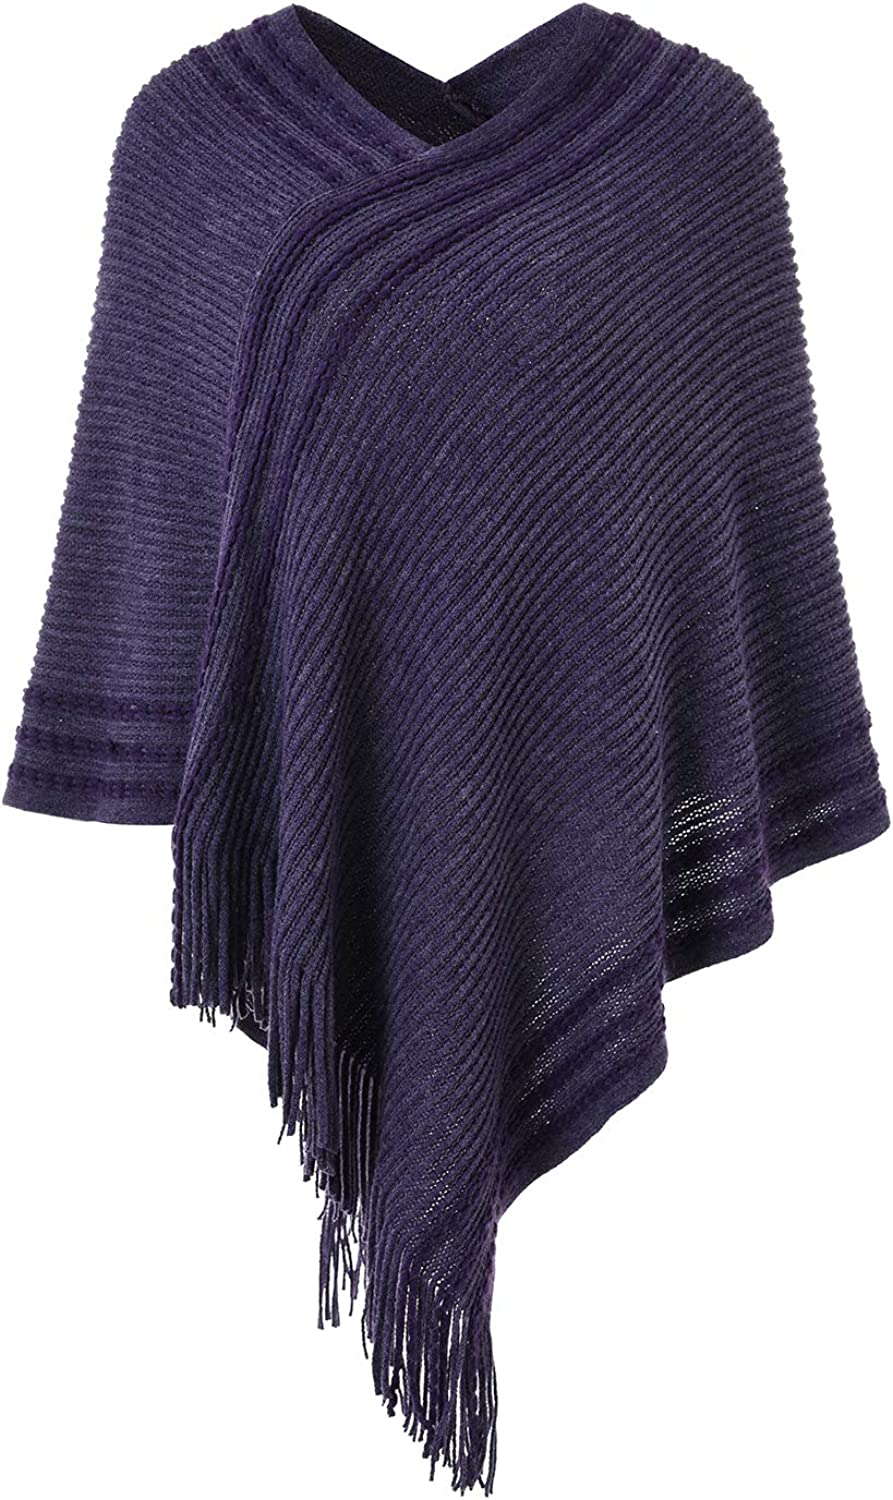 Ferand Womens Casual Striped Knit Poncho Sweater with Fringes